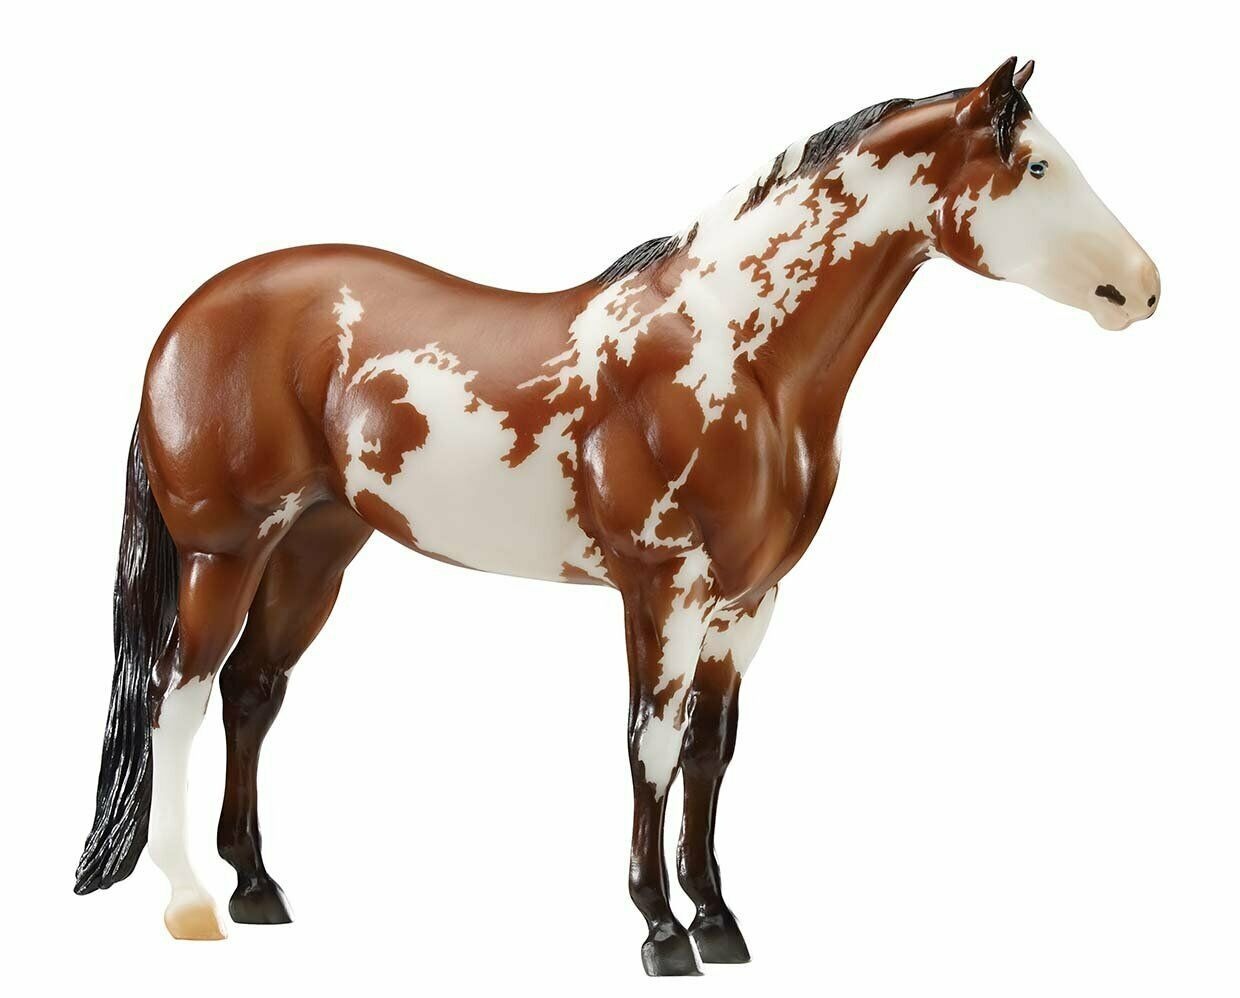 Primary image for Breyer traditional 1810 Truly Unsurpassed 2017 USEF WDAA Horse of Year Paint <>